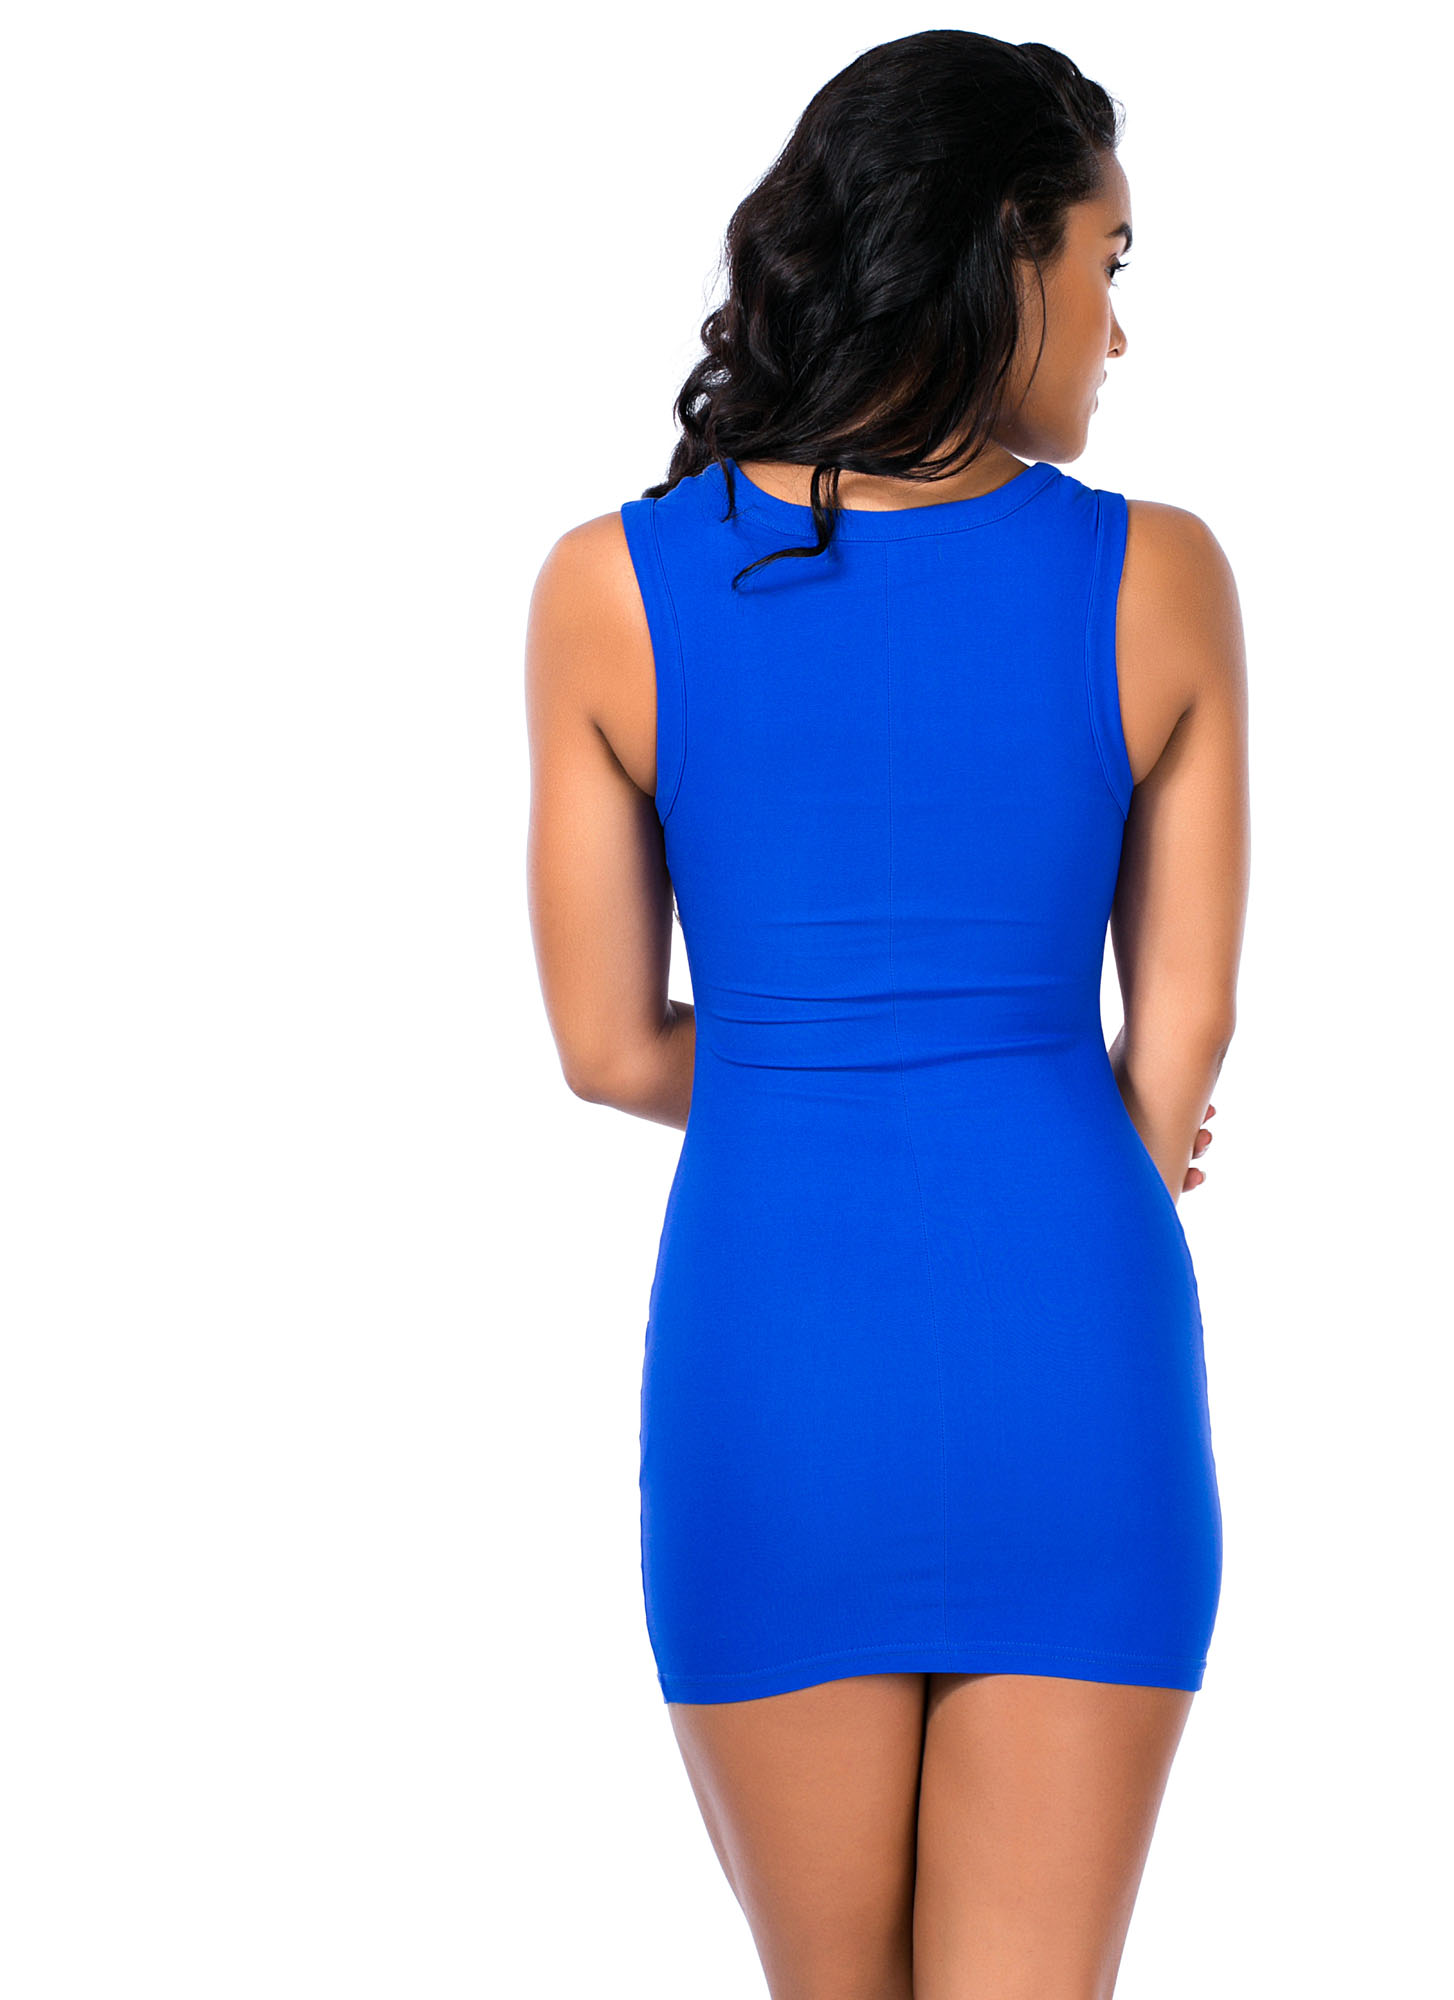 Ladder Up Strappy Caged Cut-Out Dress ROYAL